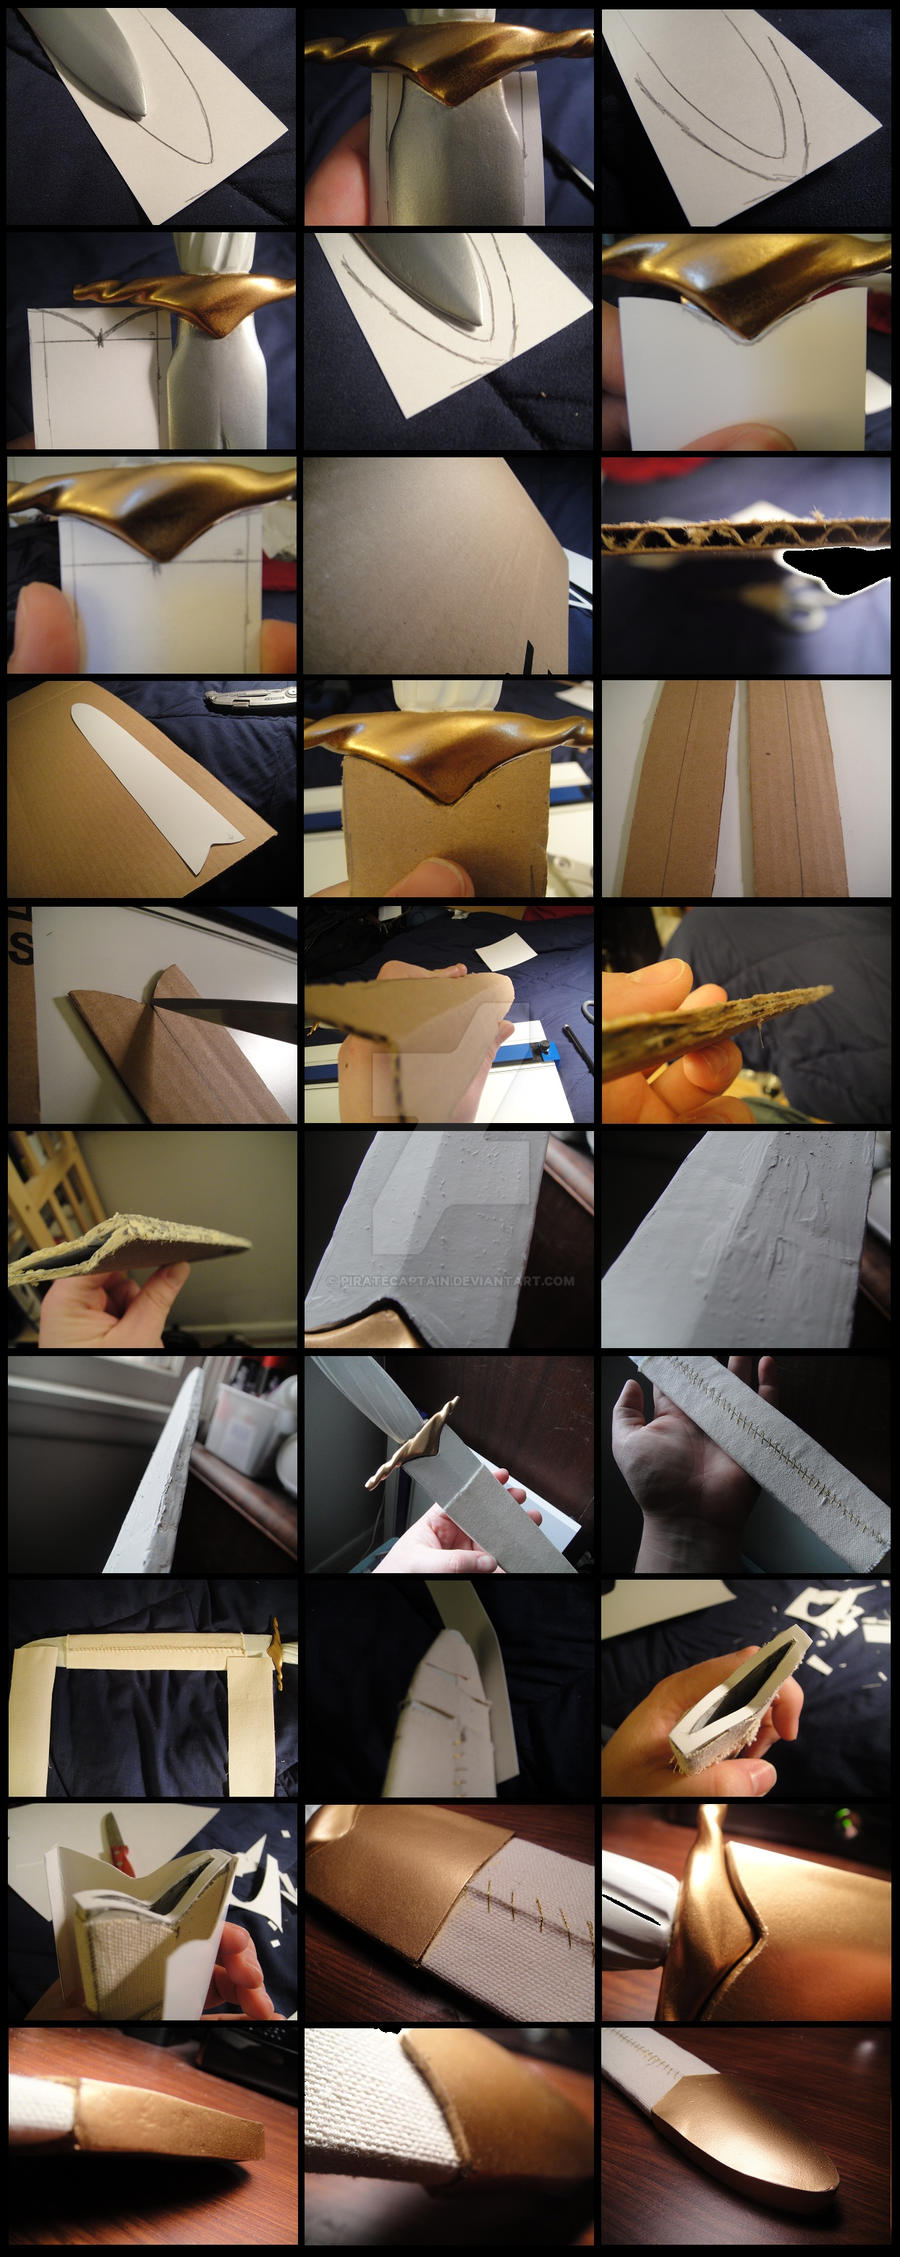 Study on Cardboard Sheaths by piratecaptain